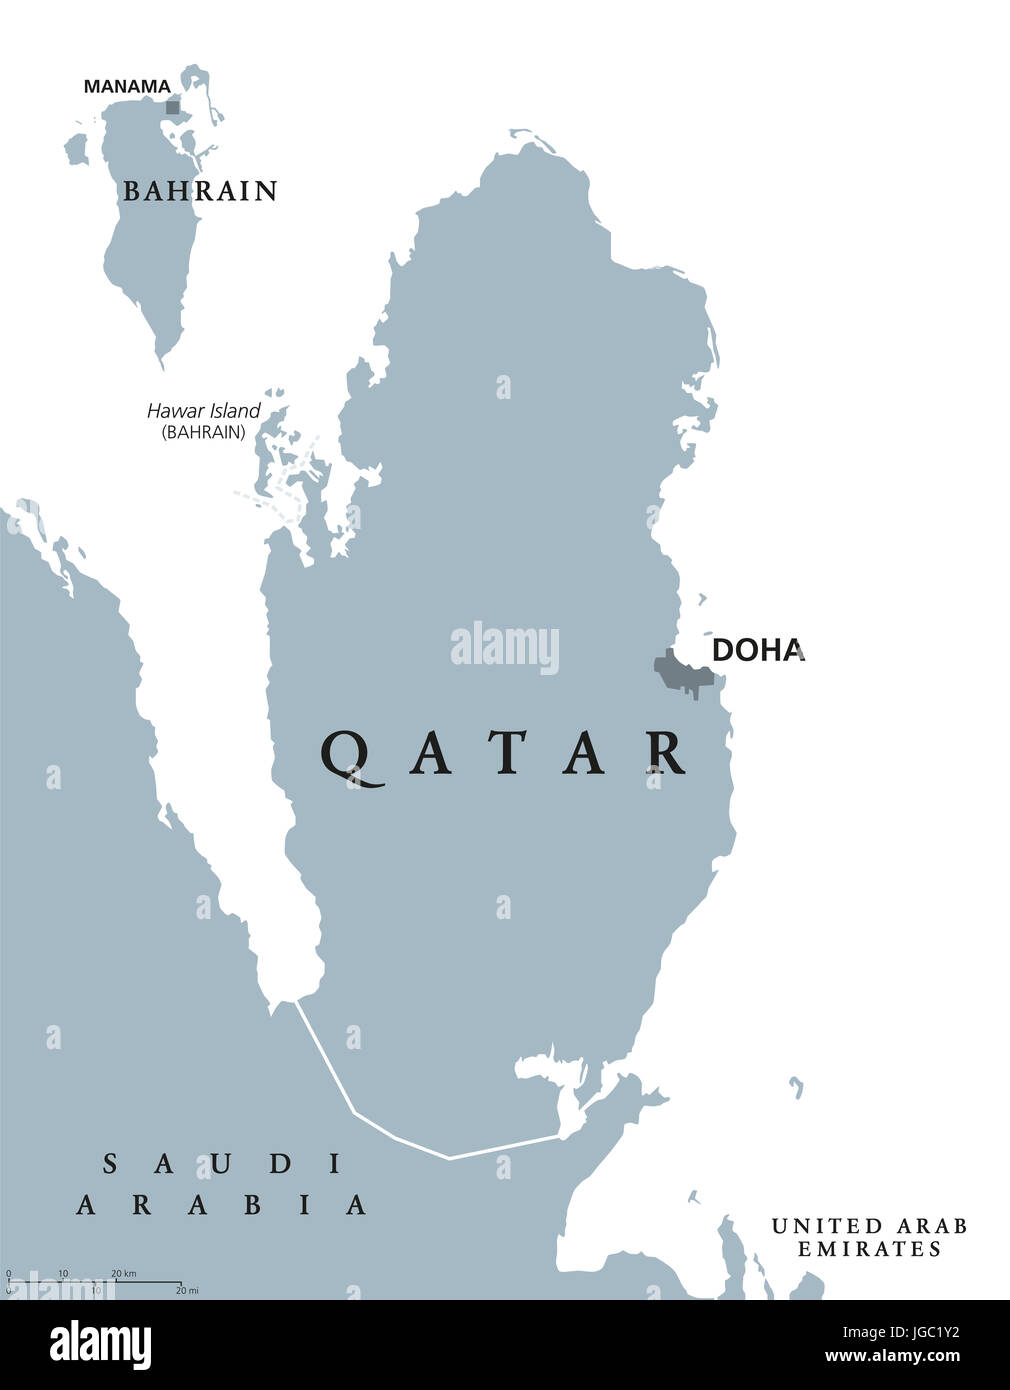 qatar political map with capital doha state and sovereign country in western asia on northeastern coast of arabian peninsula gray illustration